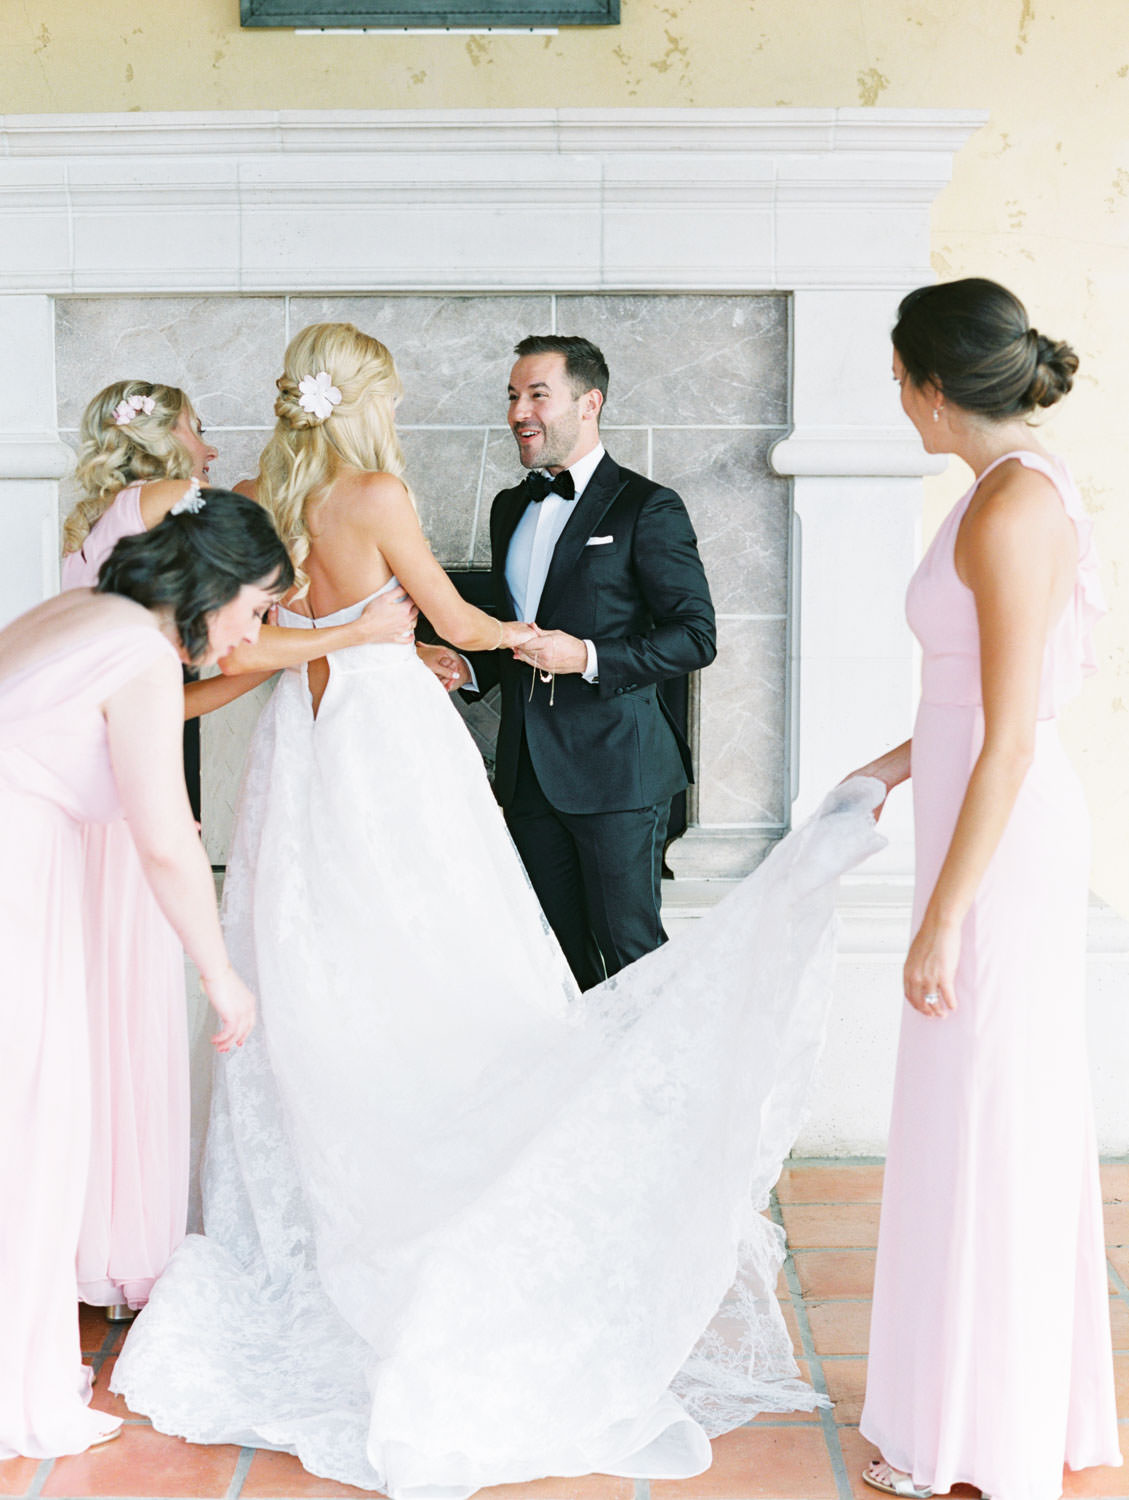 Bride getting in her gown with help of bridesman and bridesmaids in blush gowns. Miramonte Resort wedding. Film photography by Cavin Elizabeth.